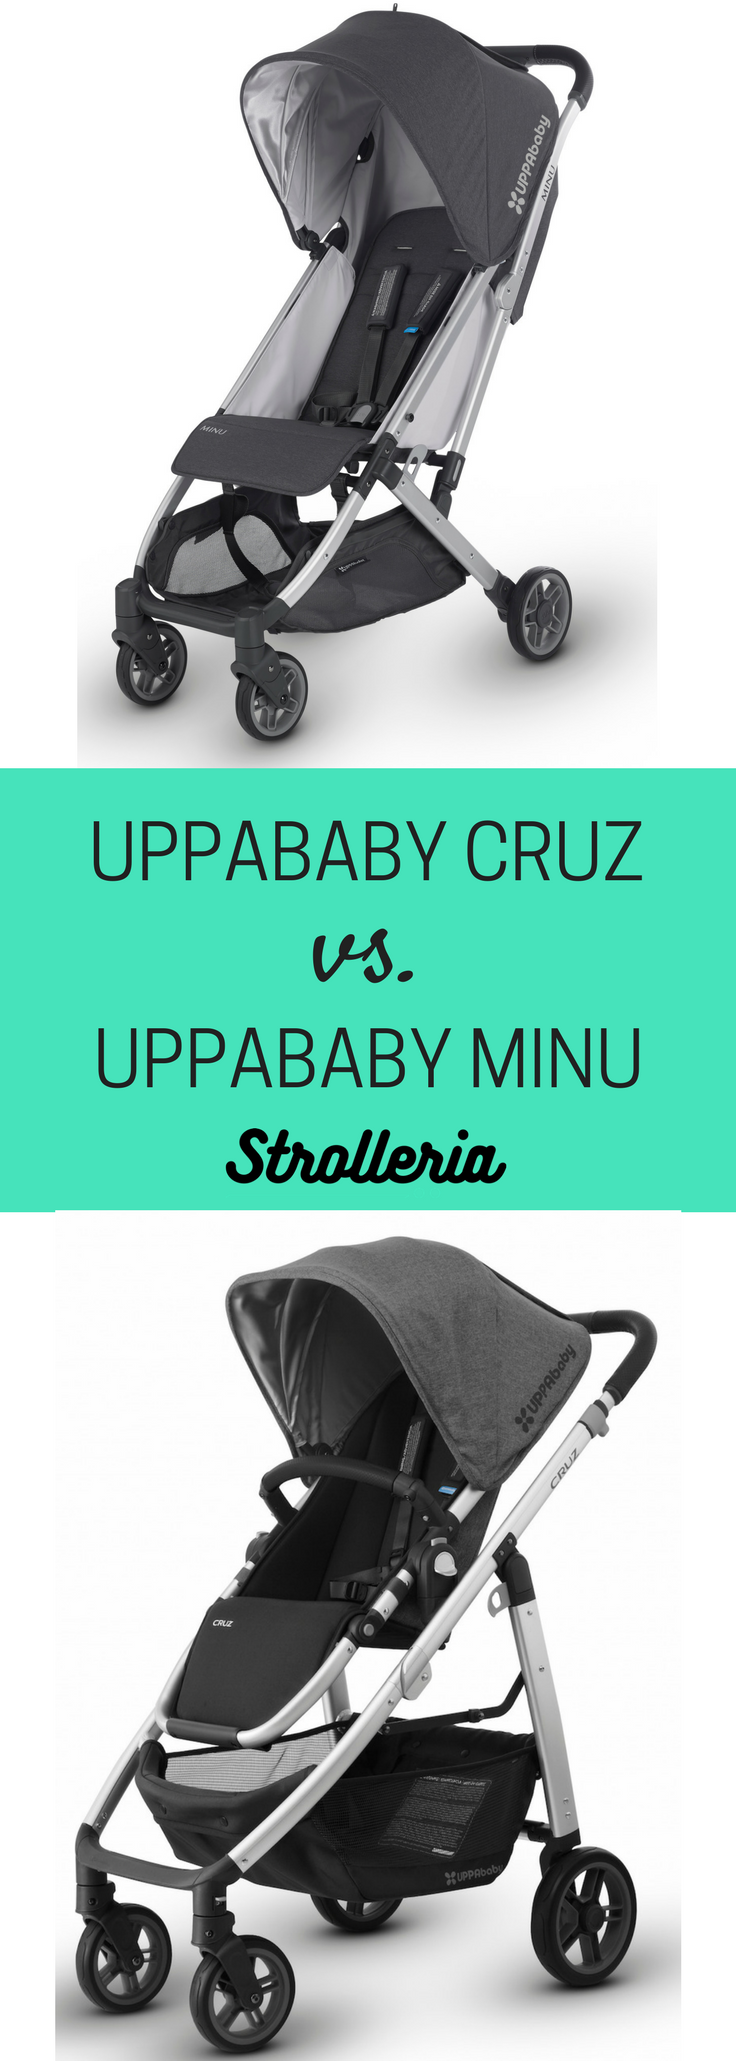 UPPAbaby CRUZ vs. UPPAbaby MINU Stroller Comparison Baby